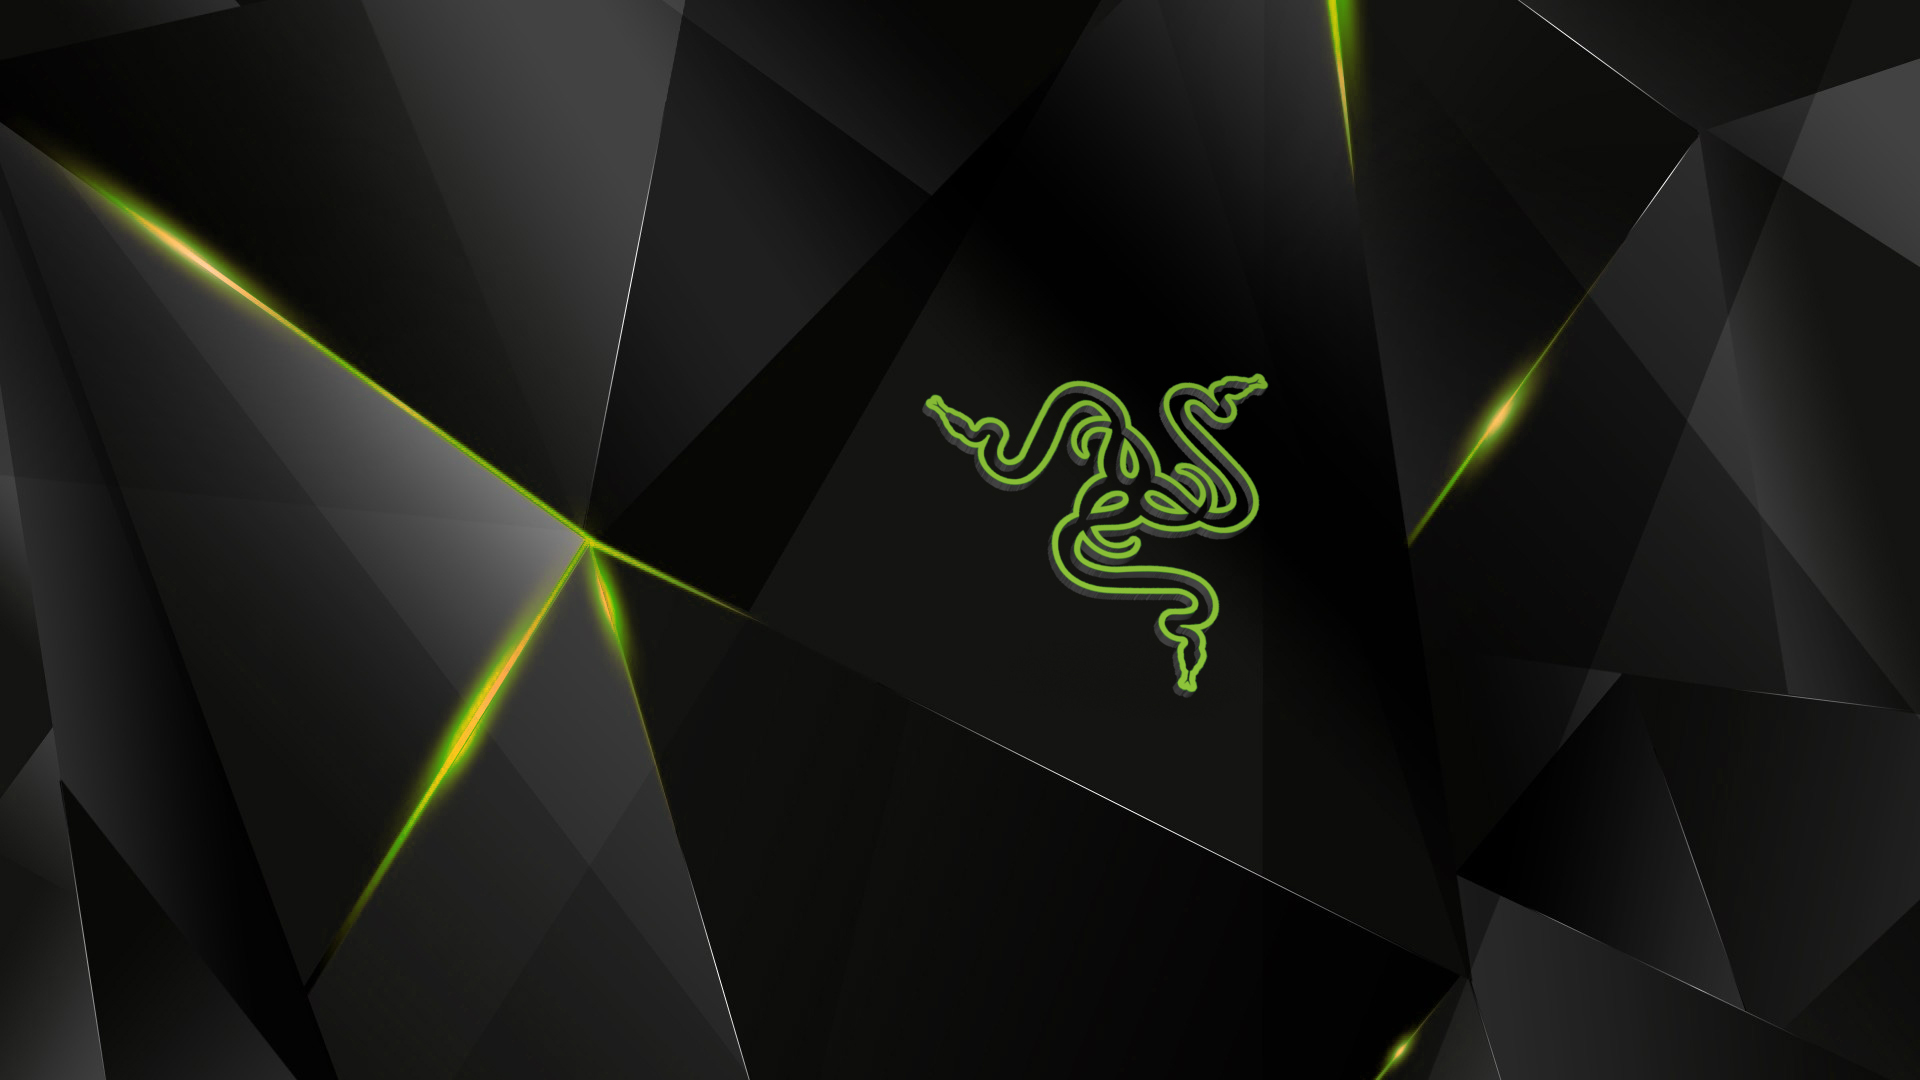 High Resolution Wallpaper | Razer 1920x1080 px